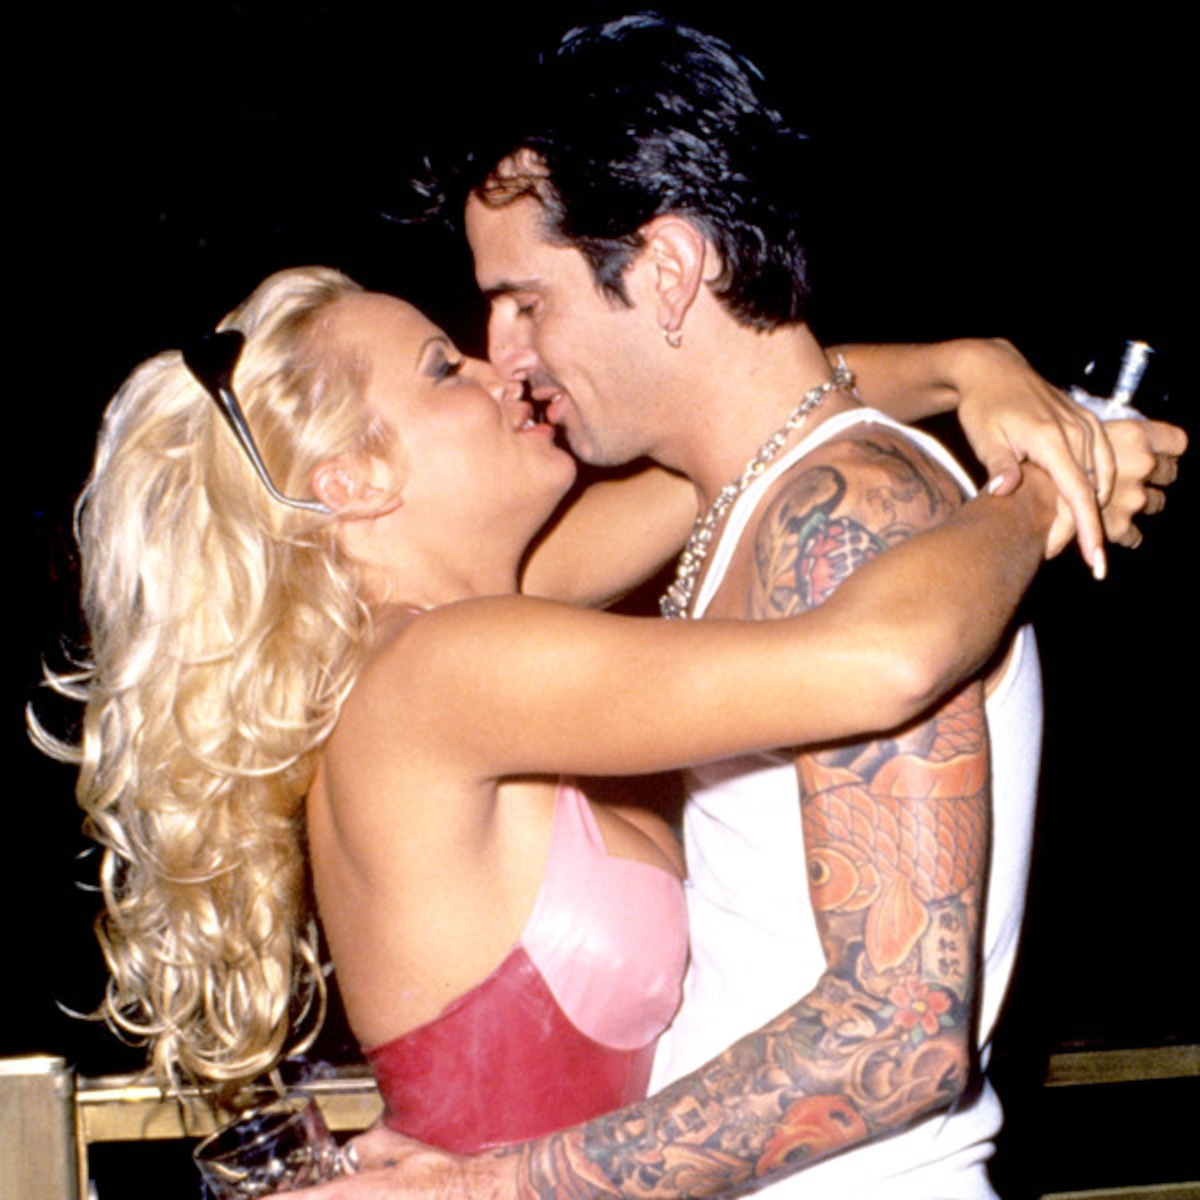 Tommy Lee And Pam Anderson Vid photo 18